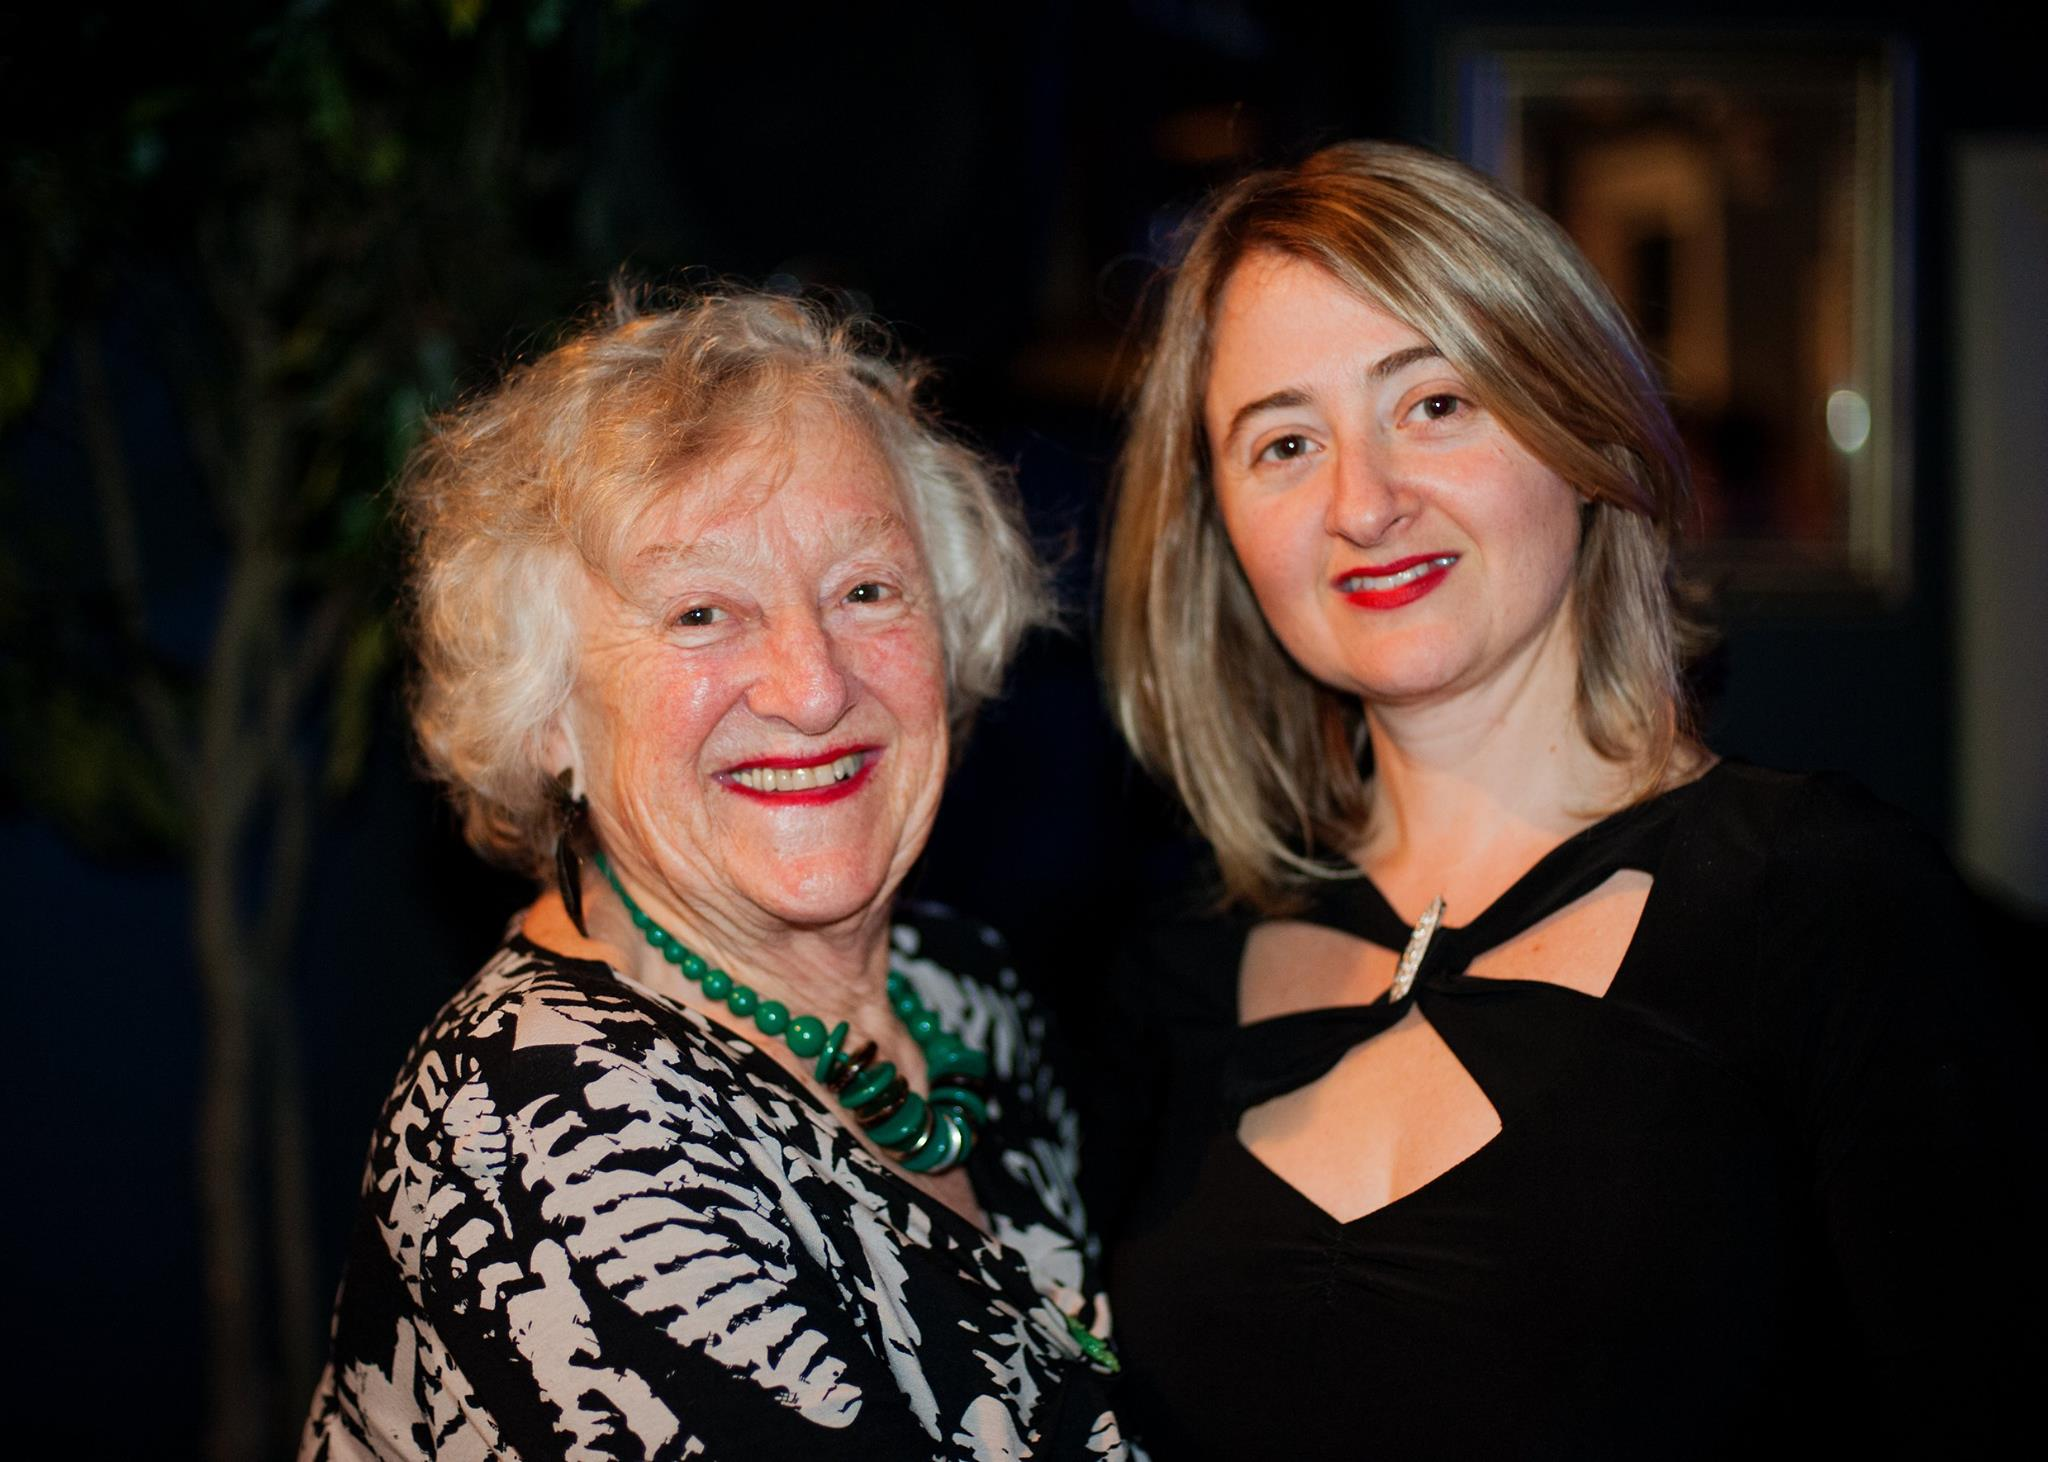 And happy Mother's Day to the original creative mama, my dear mother Bev, who recenlty turned 80, and as usual is my biggest support and the last mama standing!